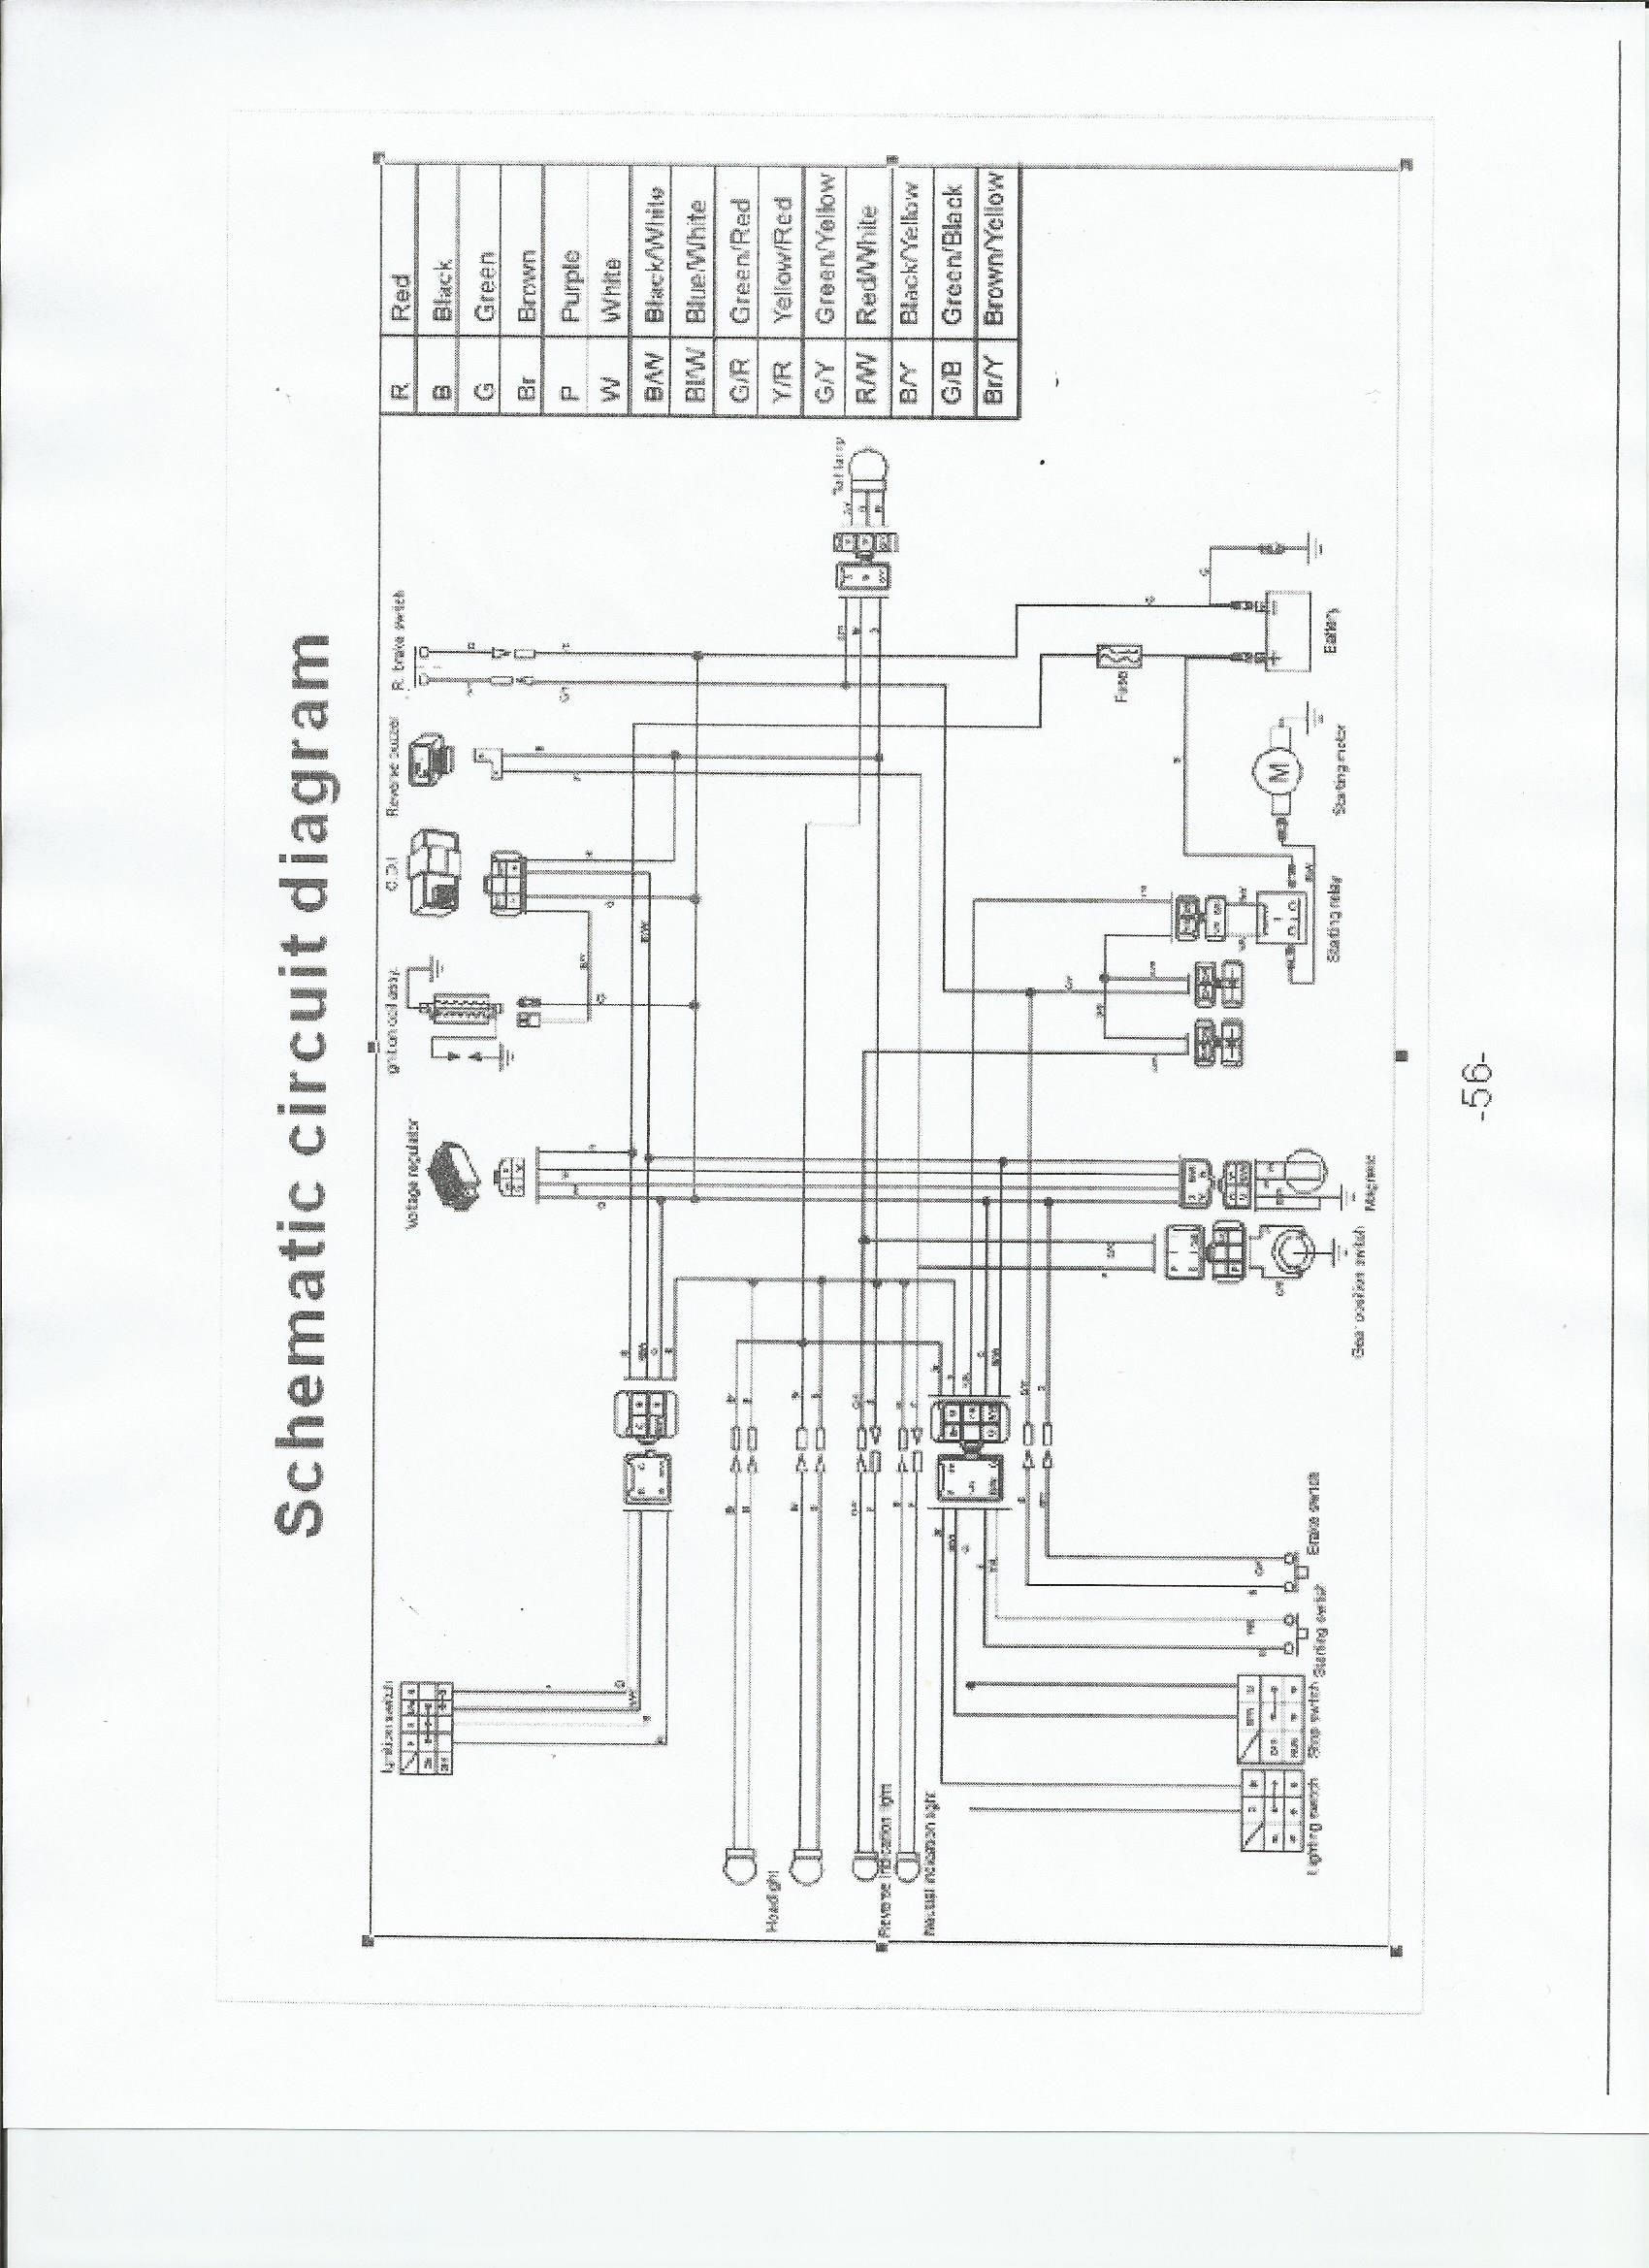 honda gx340 electric start wiring diagram   41 wiring diagram images